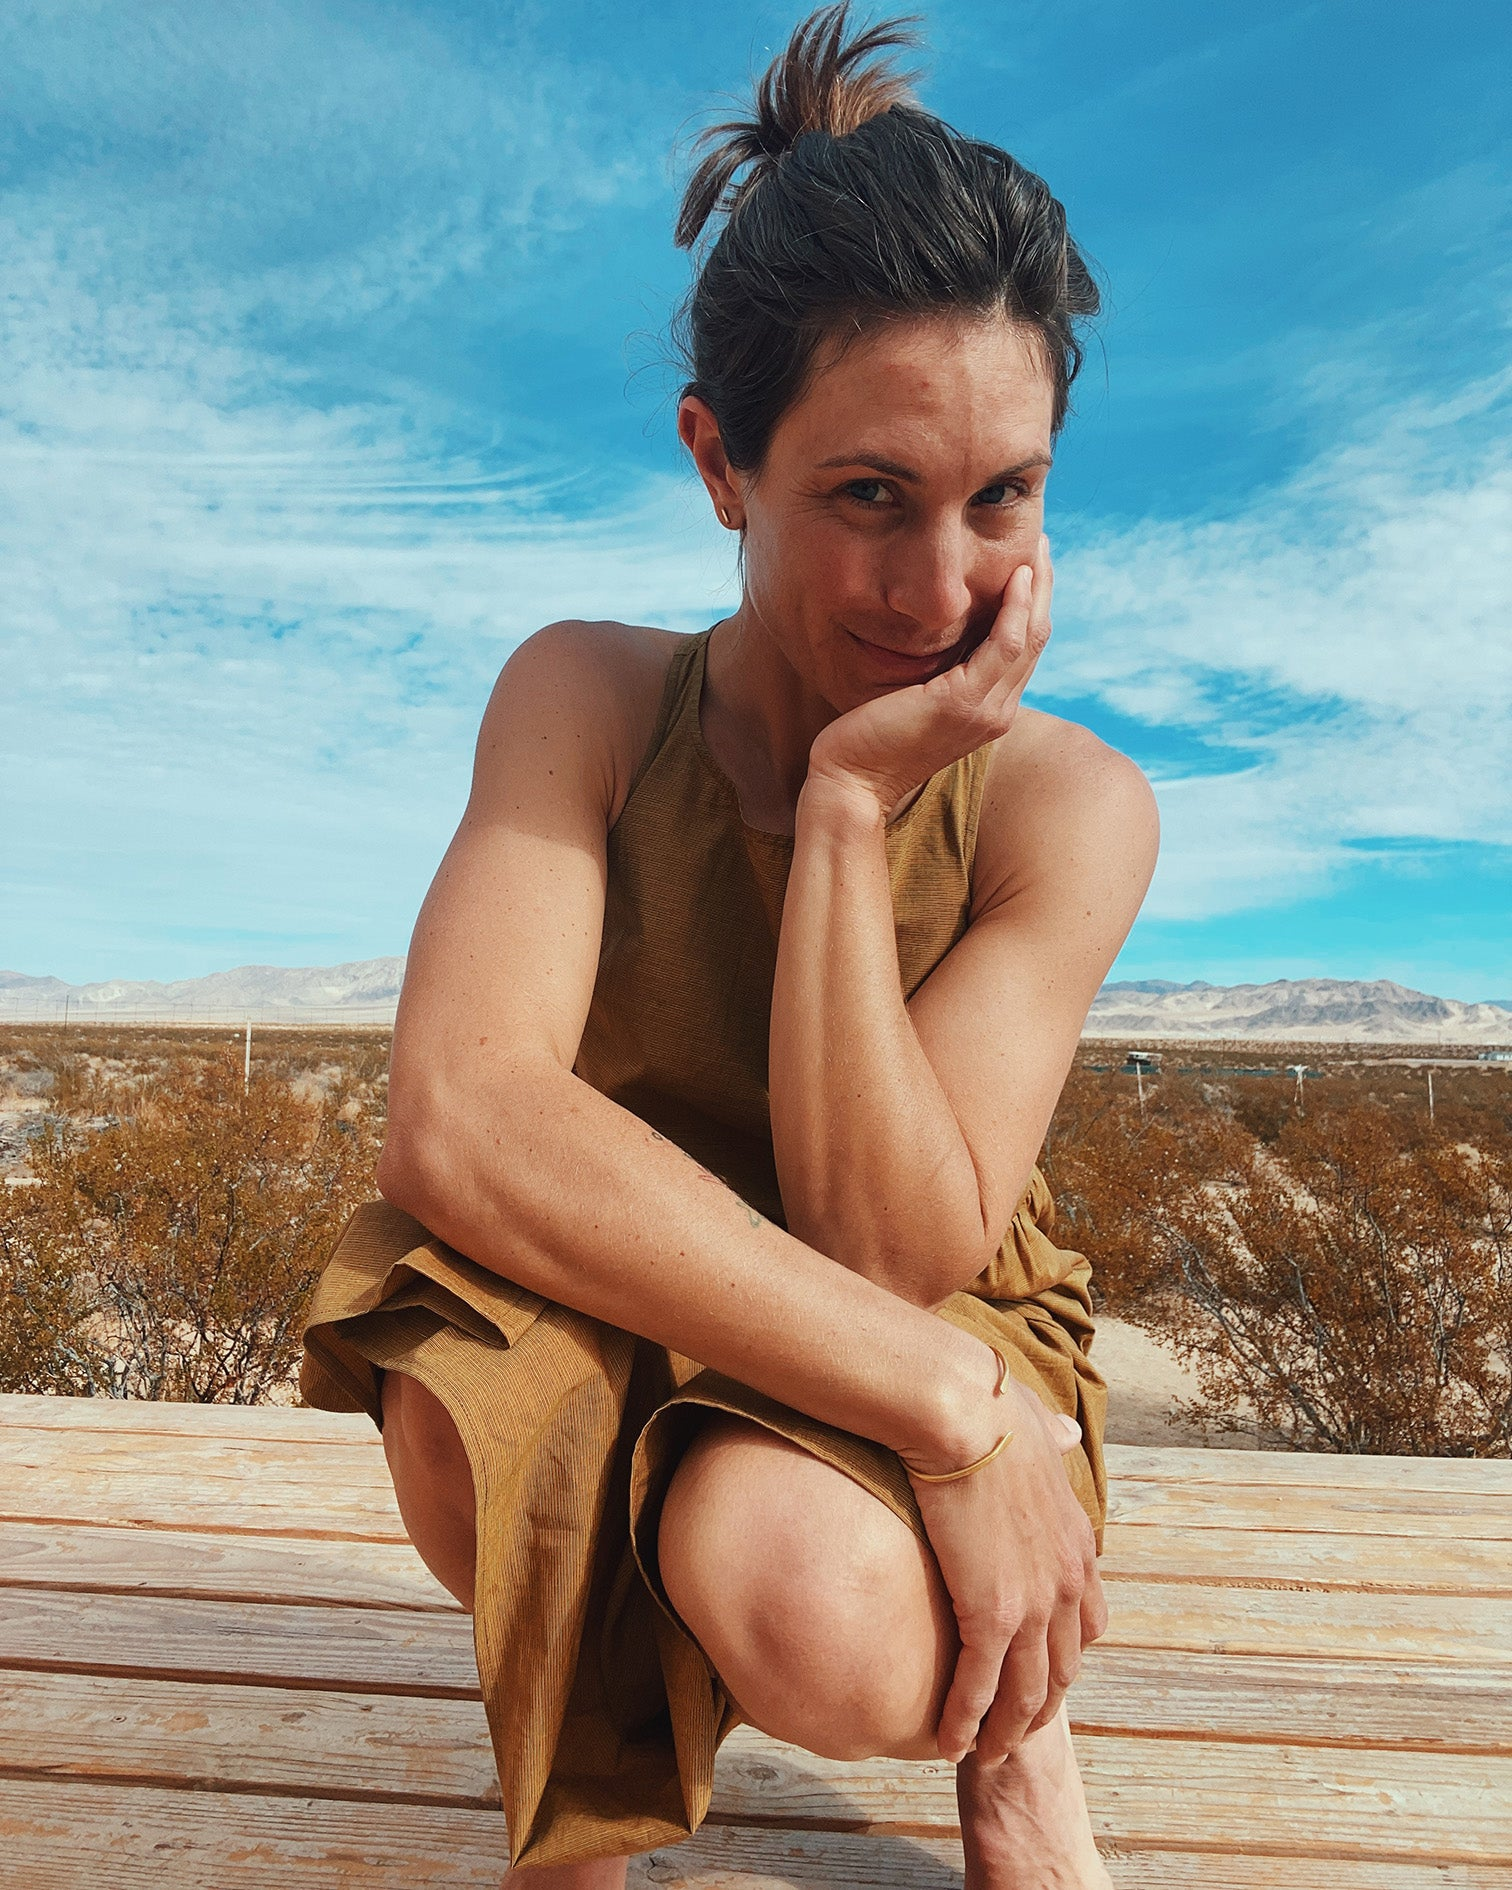 woman in mustard yellow long tiered dress crouching on wood deck looking you straight in the eyes in Joshua Tree with mountains and desert landscape in the background